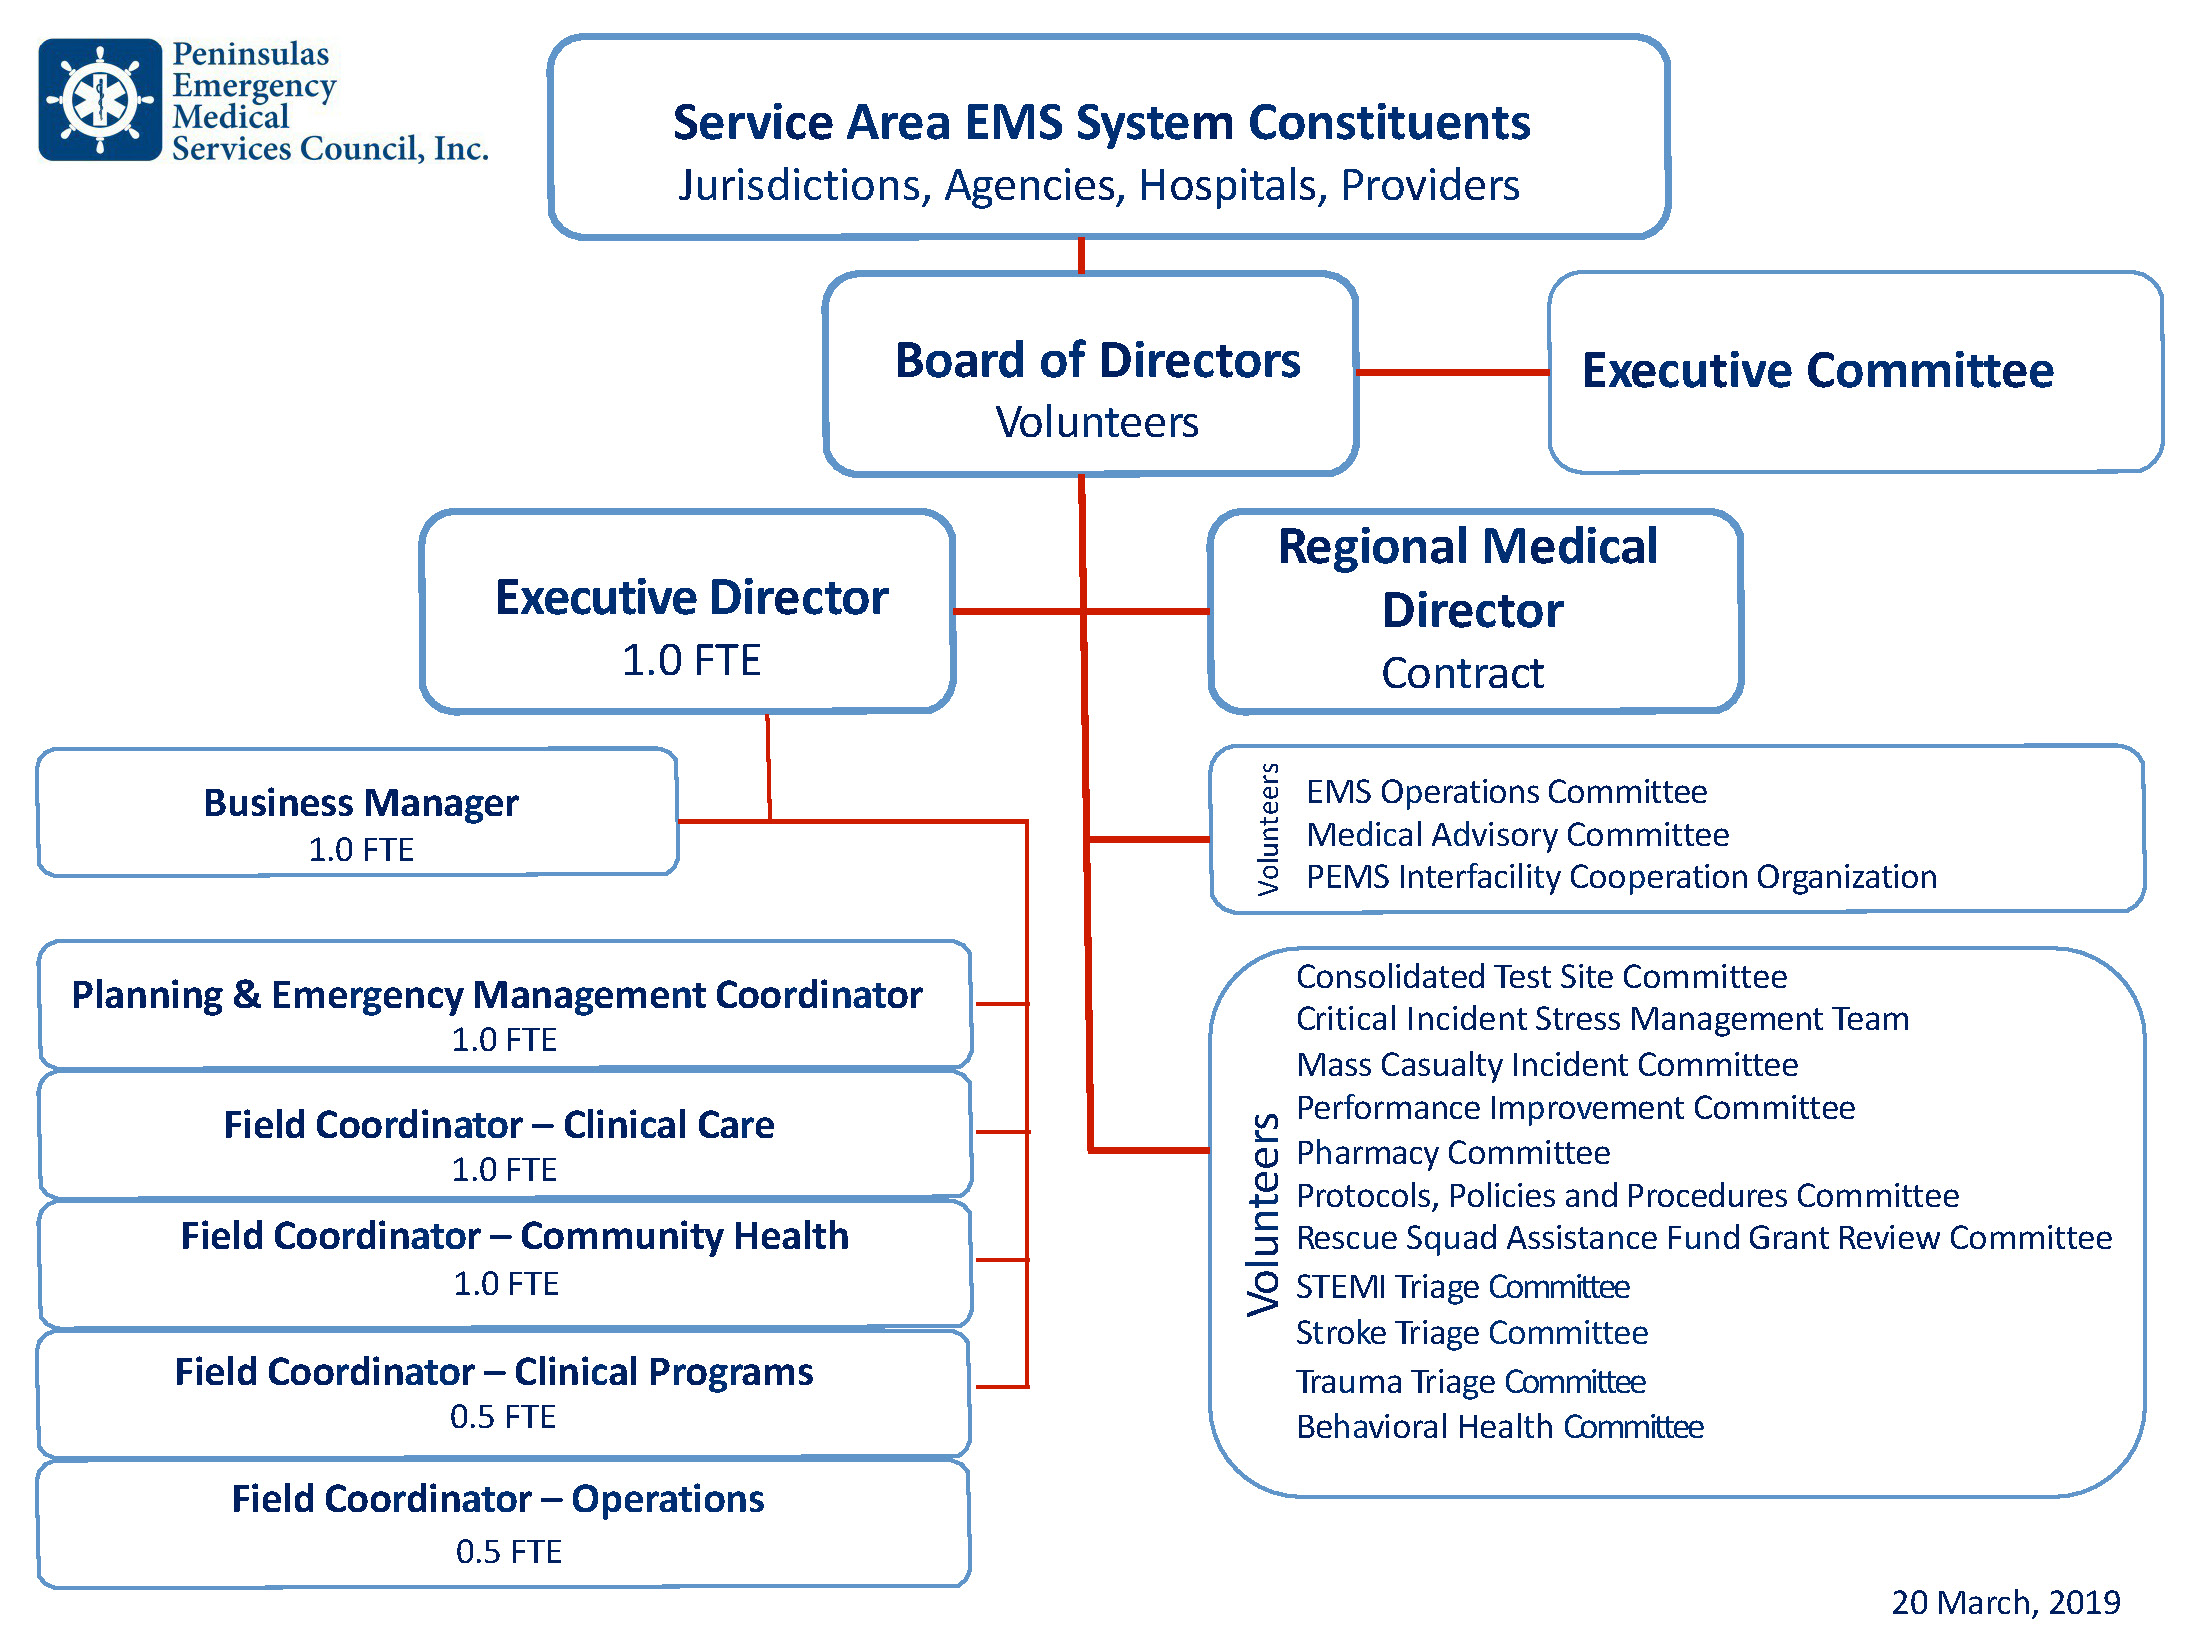 PEMS Organization Structure 04 09 19